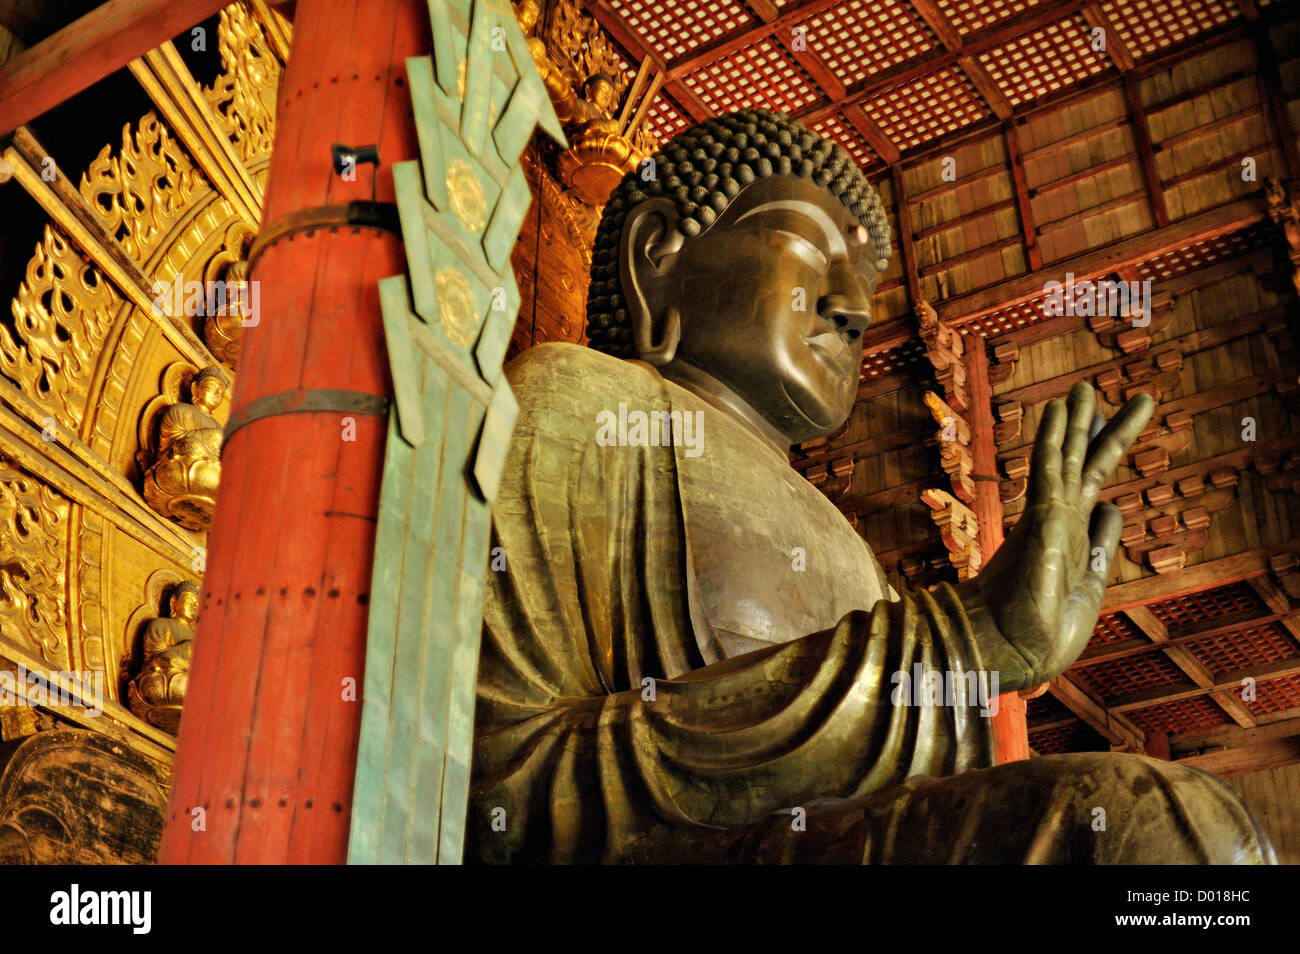 The great bronze statue of Buddha at Todaiji temple, Nara, Japan Stock Photo